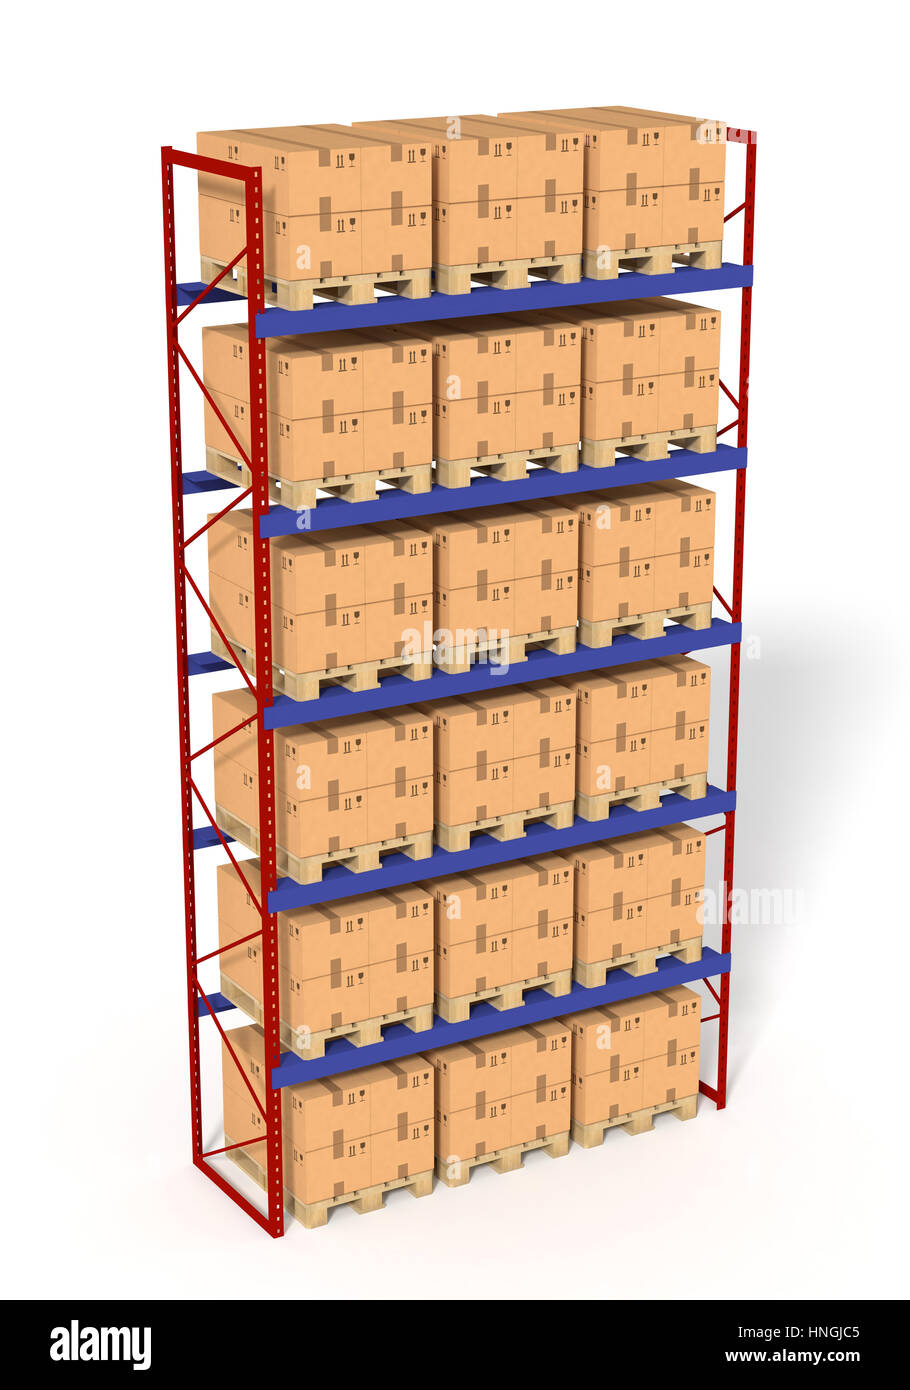 Warehouse Shelves Rack Filled With Brown Boxes Isolated On